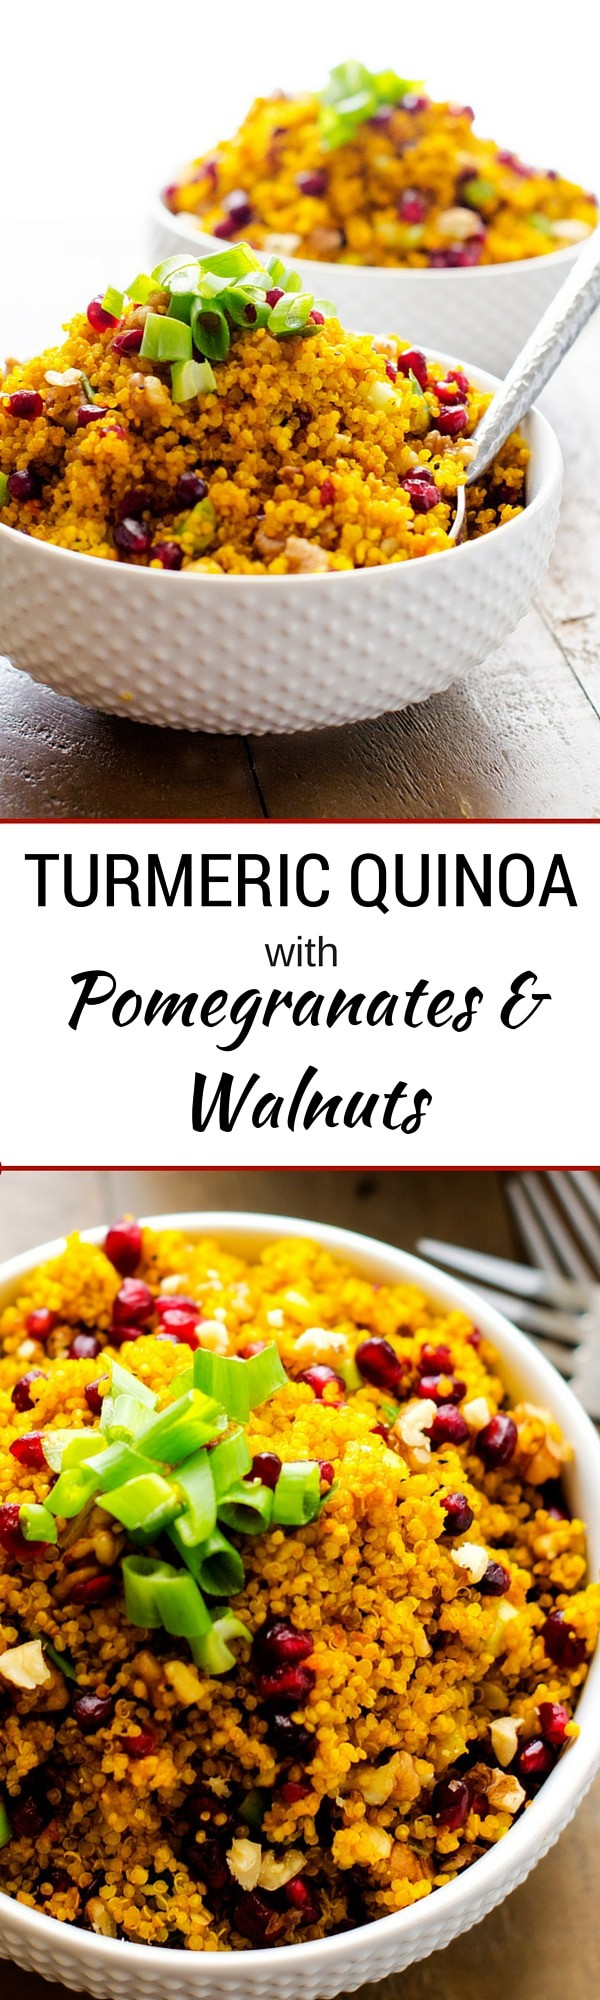 Turmeric Quinoa with Pomegranates and Walnuts